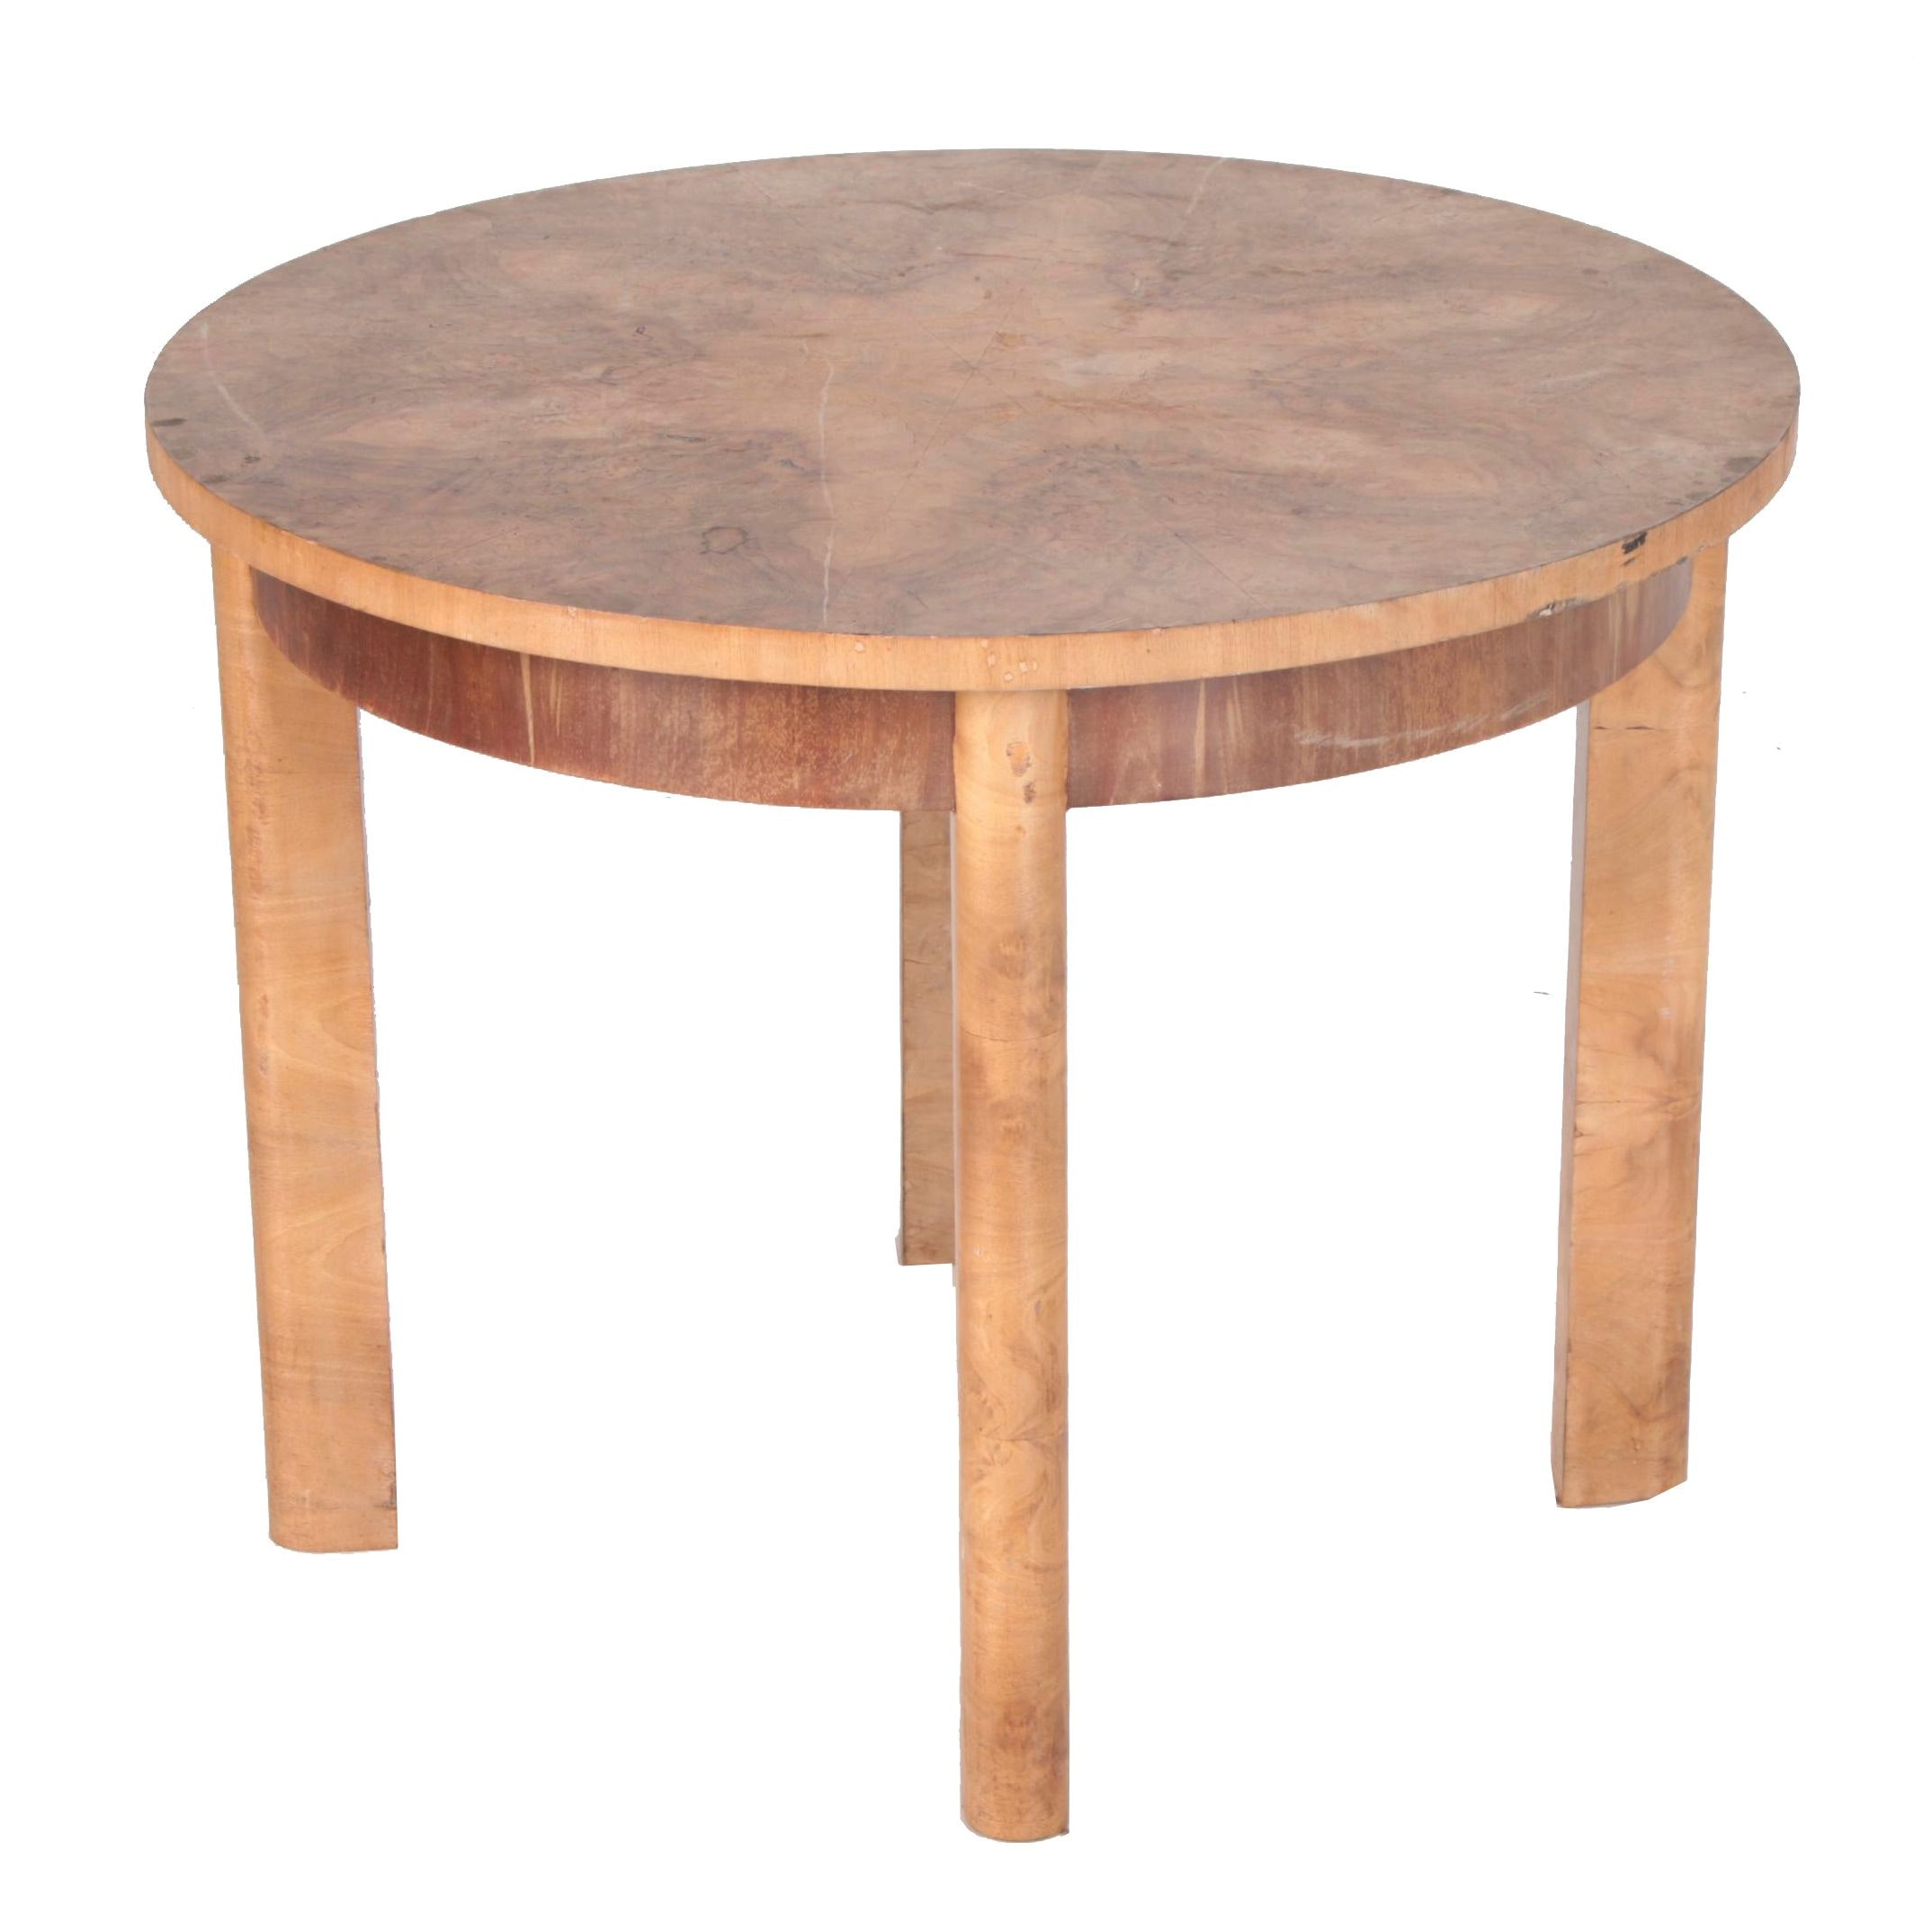 Art Deco Style Burl Wood Circular Occasional Table, Mid-20th Century